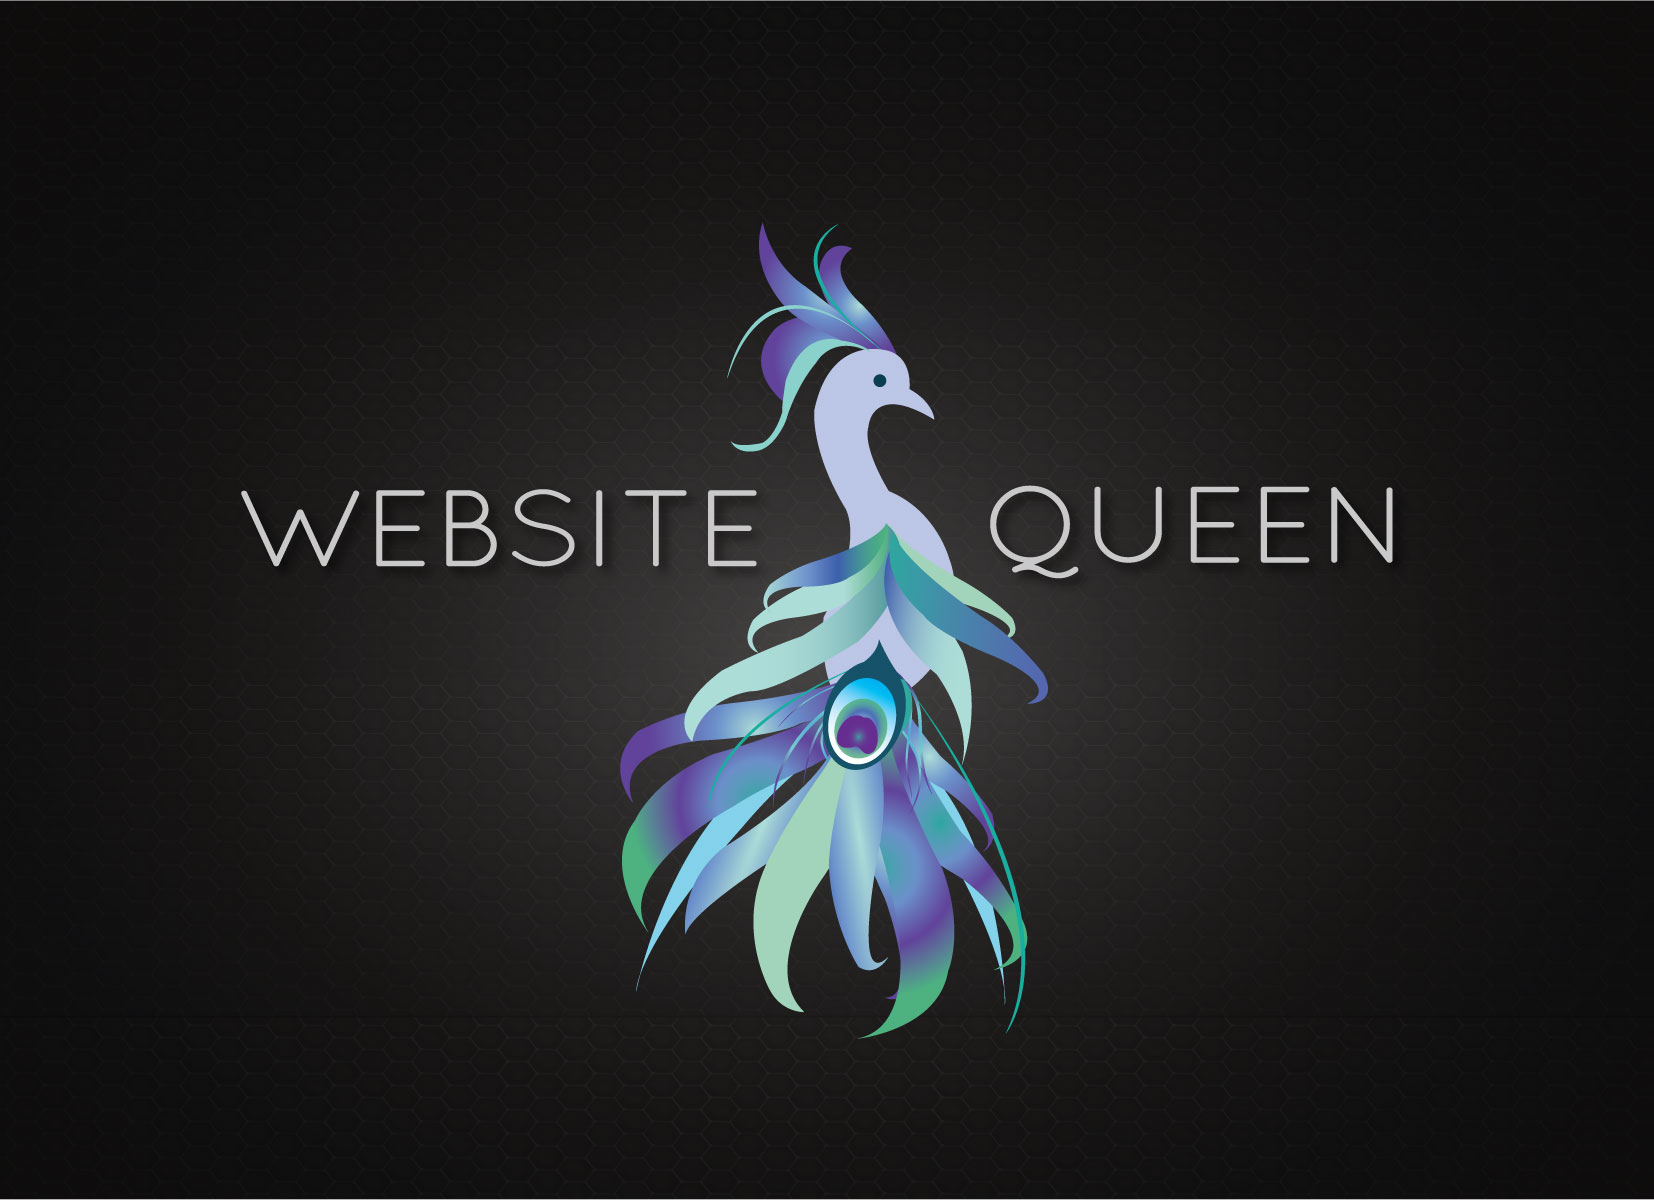 The Website Queen